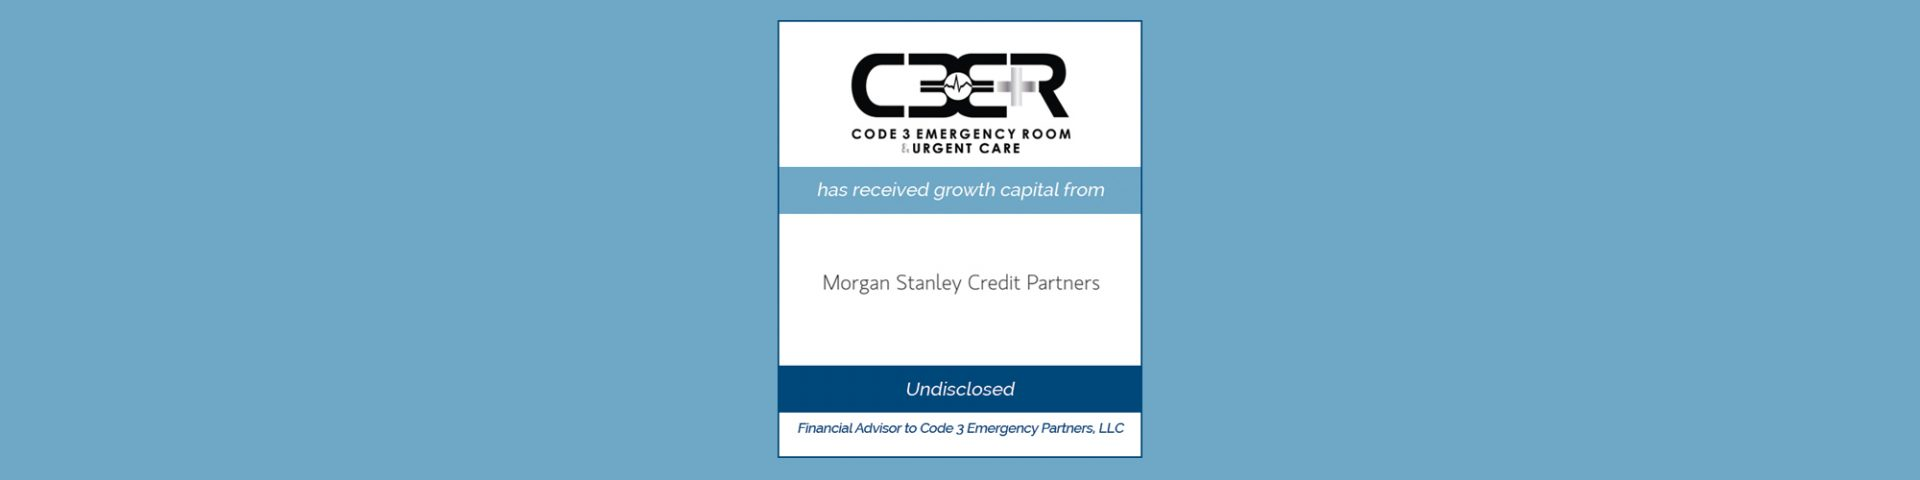 Code 3 Emergency Partners Receives Growth Capital from Morgan Stanley Credit Partners | Bailey Southwell & Co.